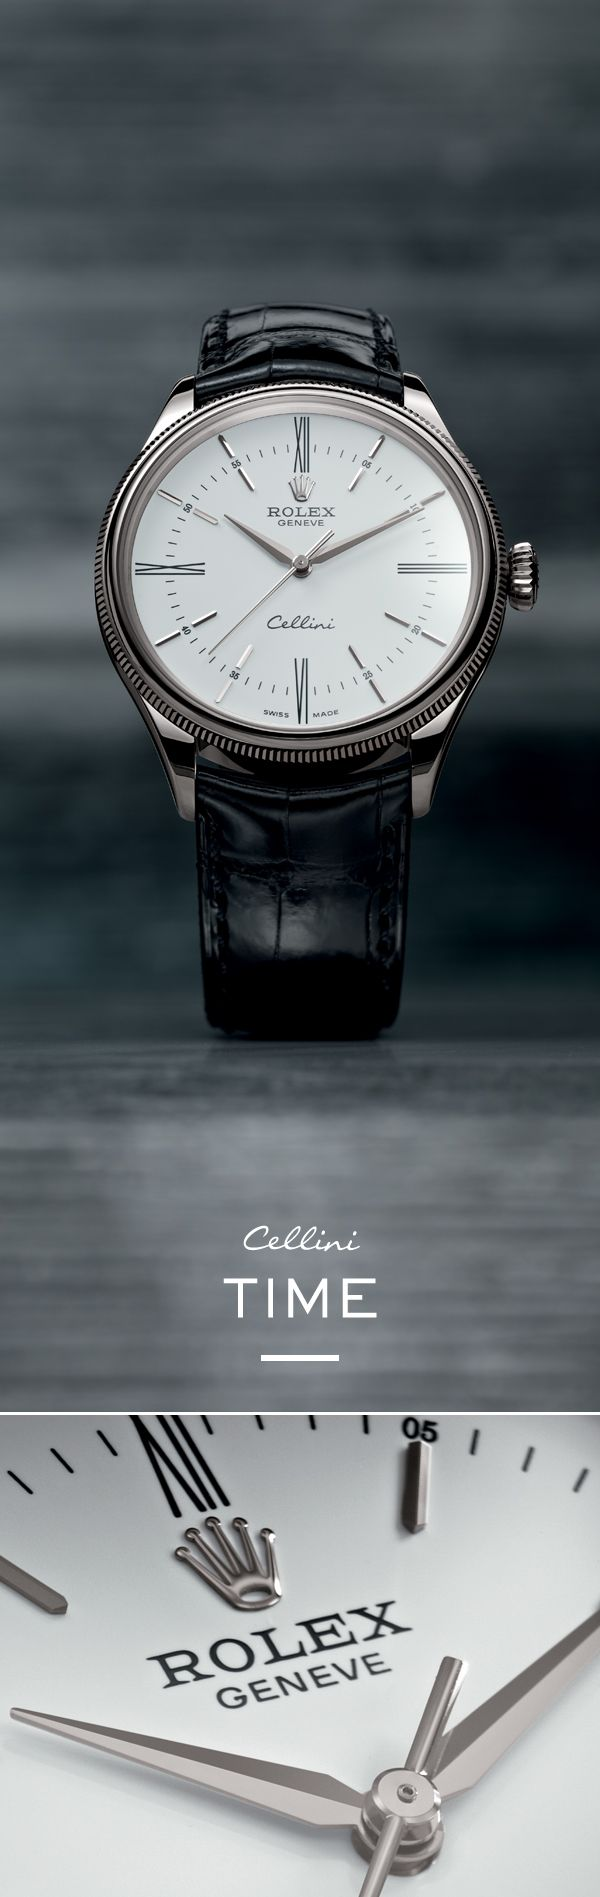 The Rolex Cellini Time 39 mm in white gold with a white dial, mounted on an alligator leather strap. #RolexOfficial #Baselworld